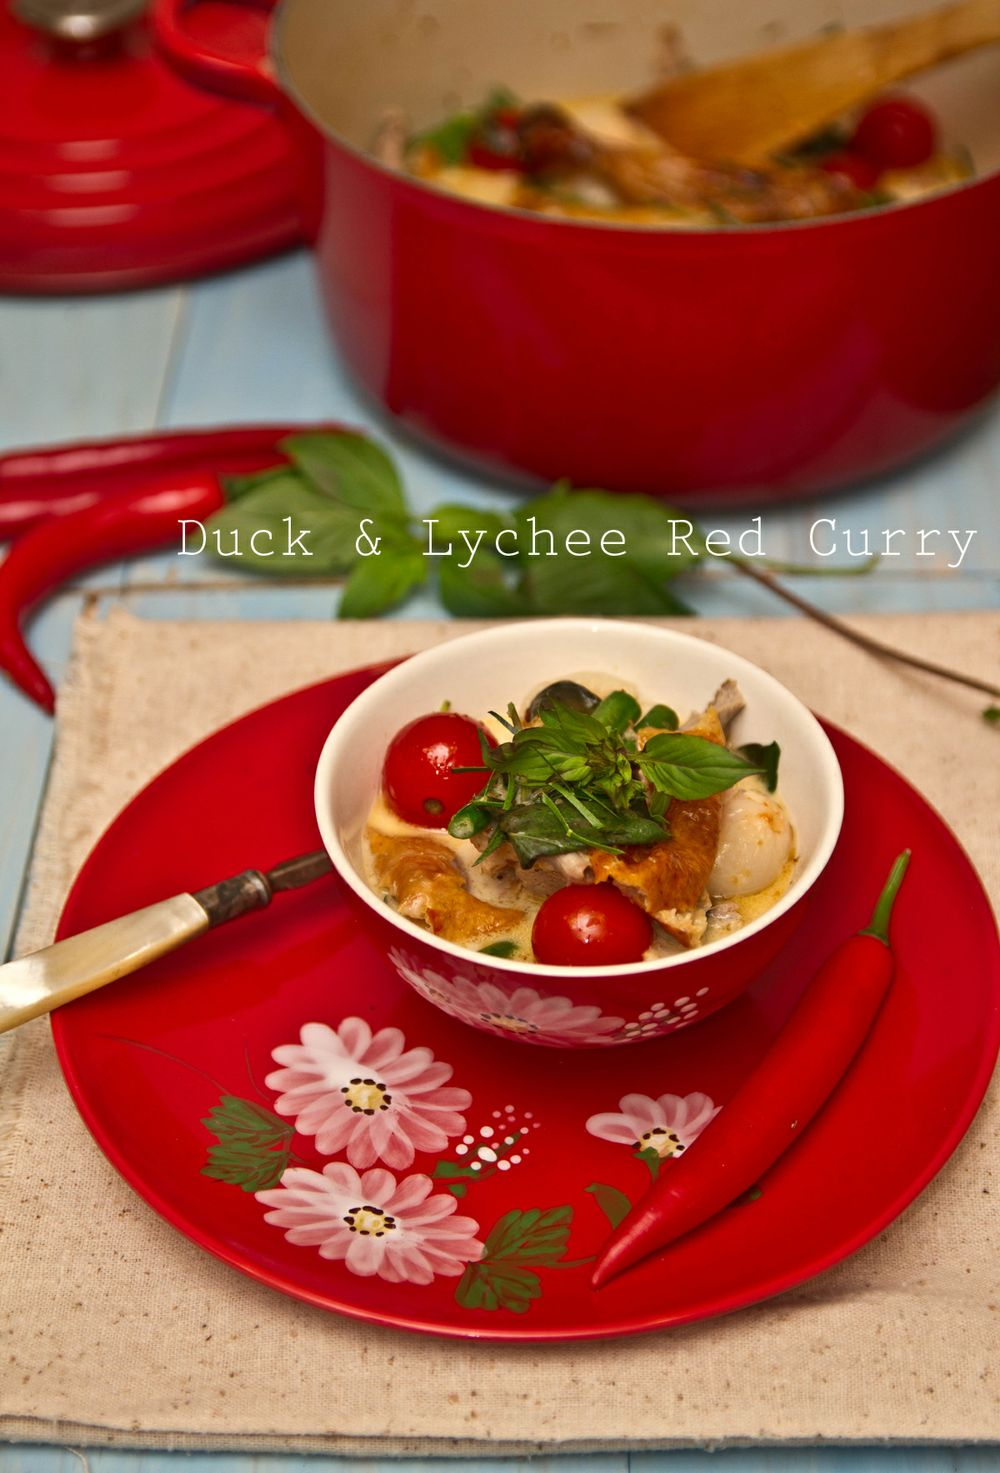 m-duck-lychee-curry-2-2